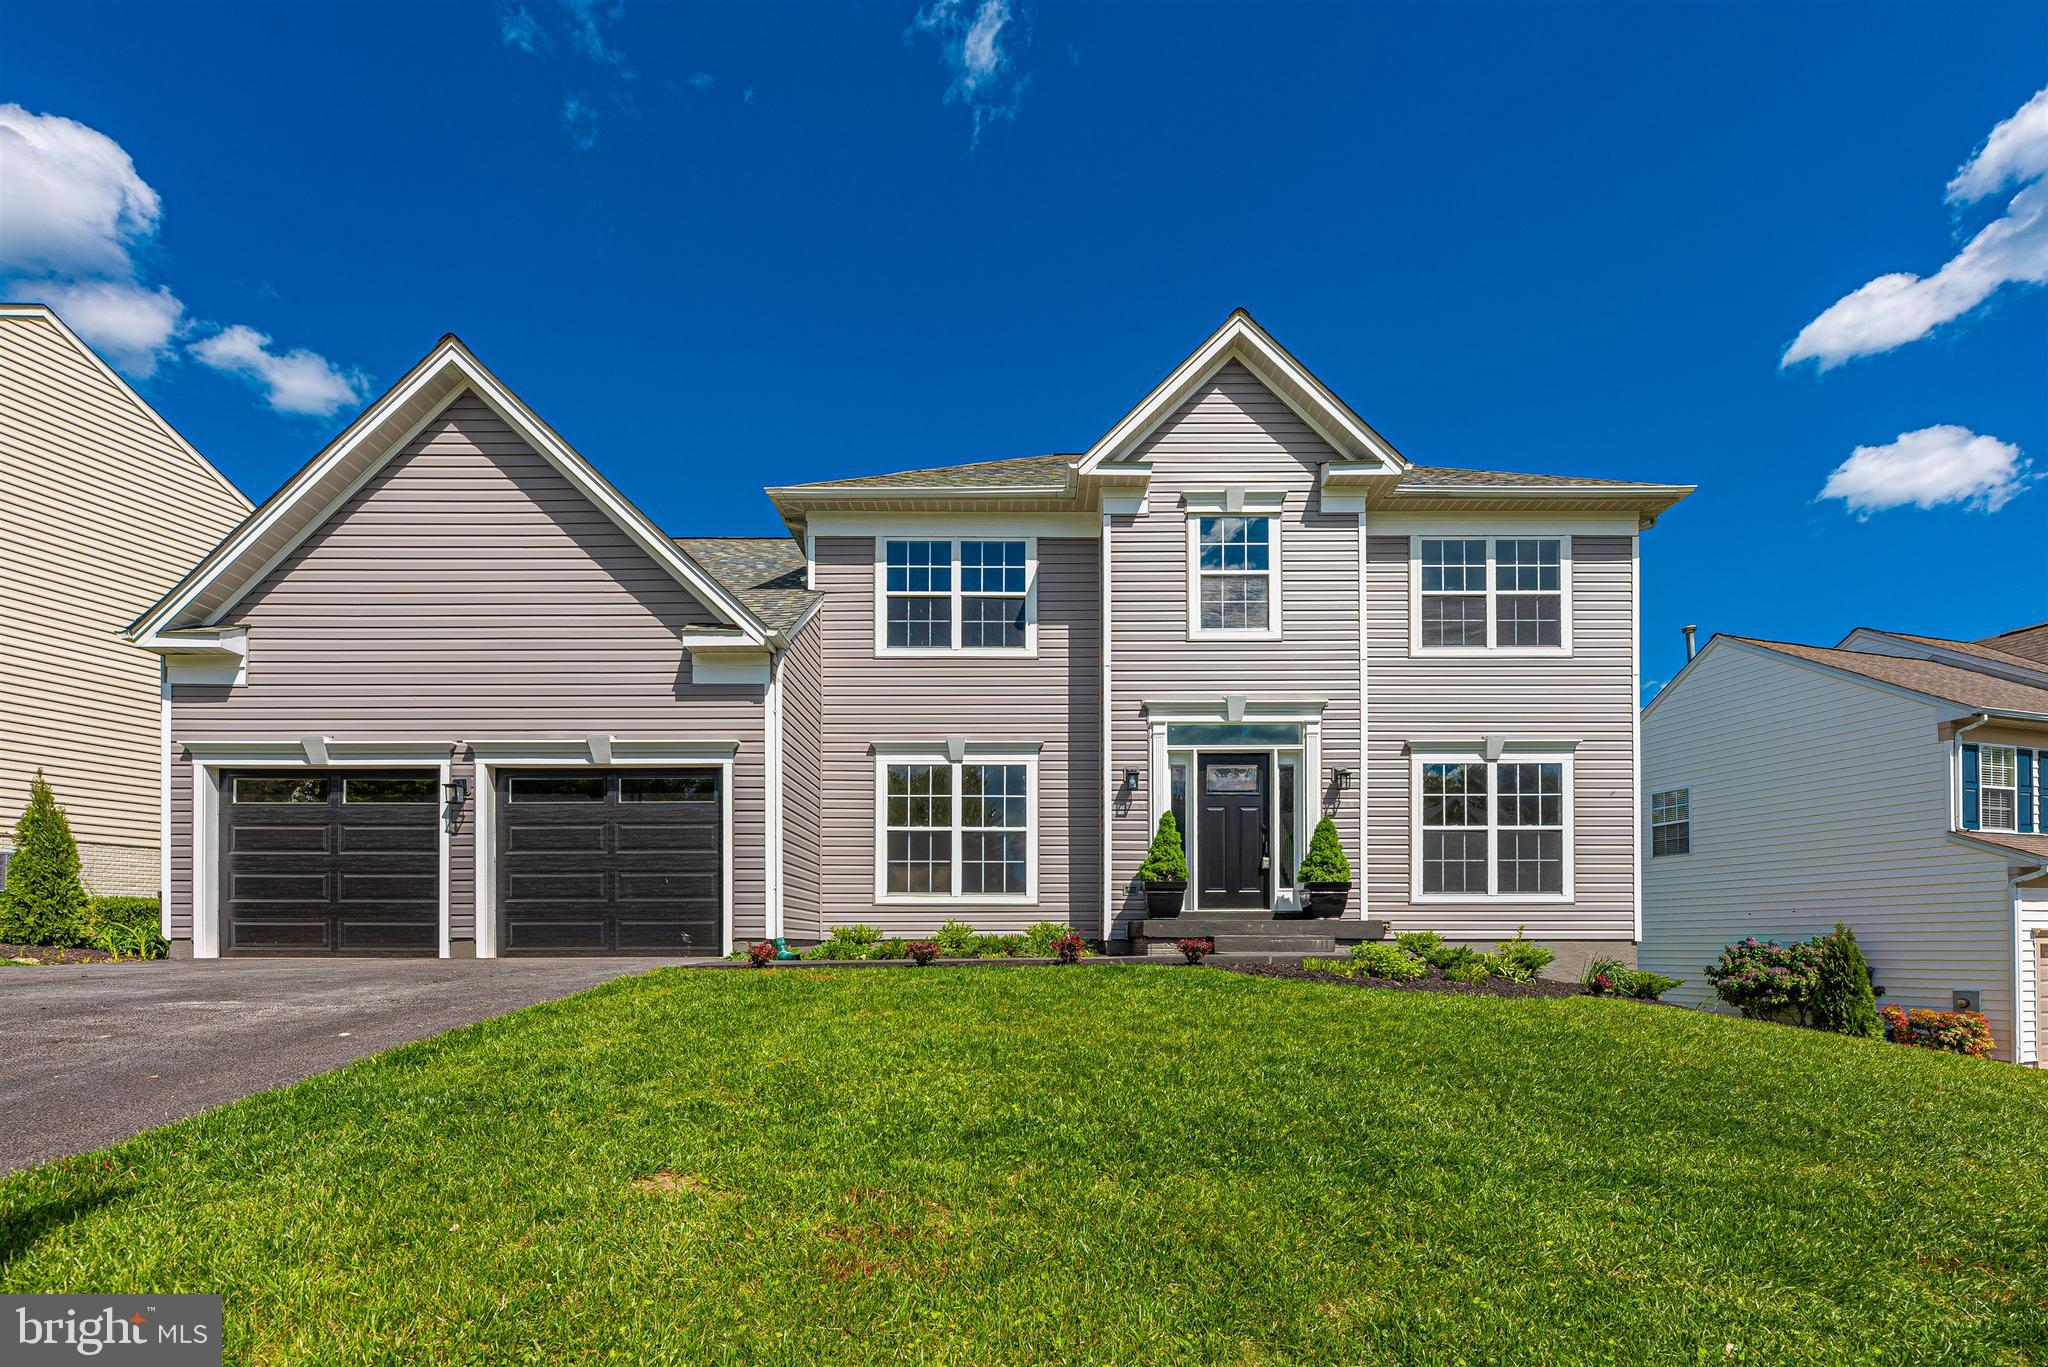 Welcome home to 6317 Knollwood Drive! This absolutely stunning, fully renovated, 4 bedroom 2 1/2 bat